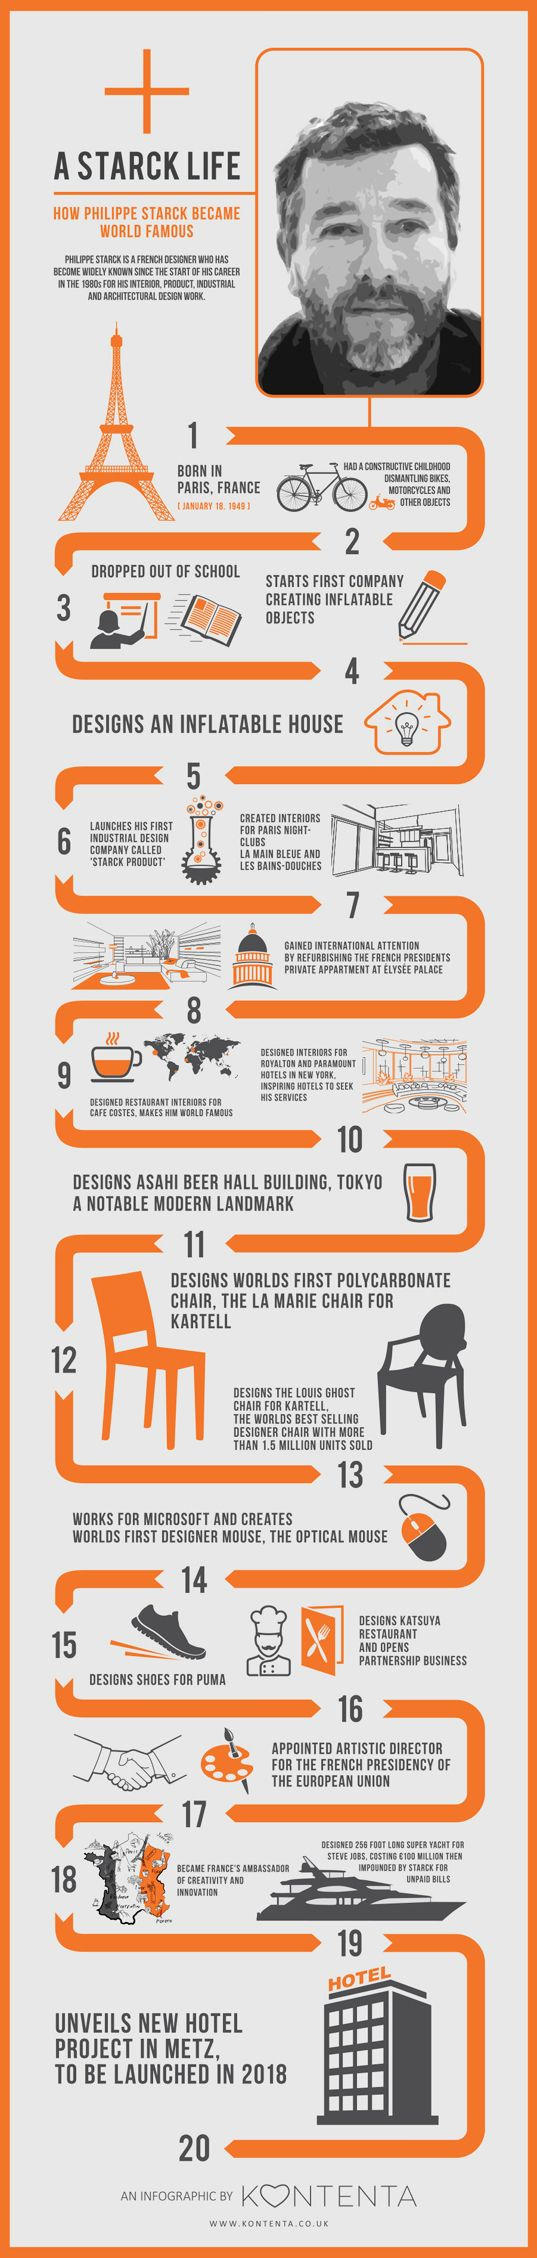 INFOGRAPHIC Spotlight On Design Star Philippe Starck Interior CareerFamous DesignersFrench